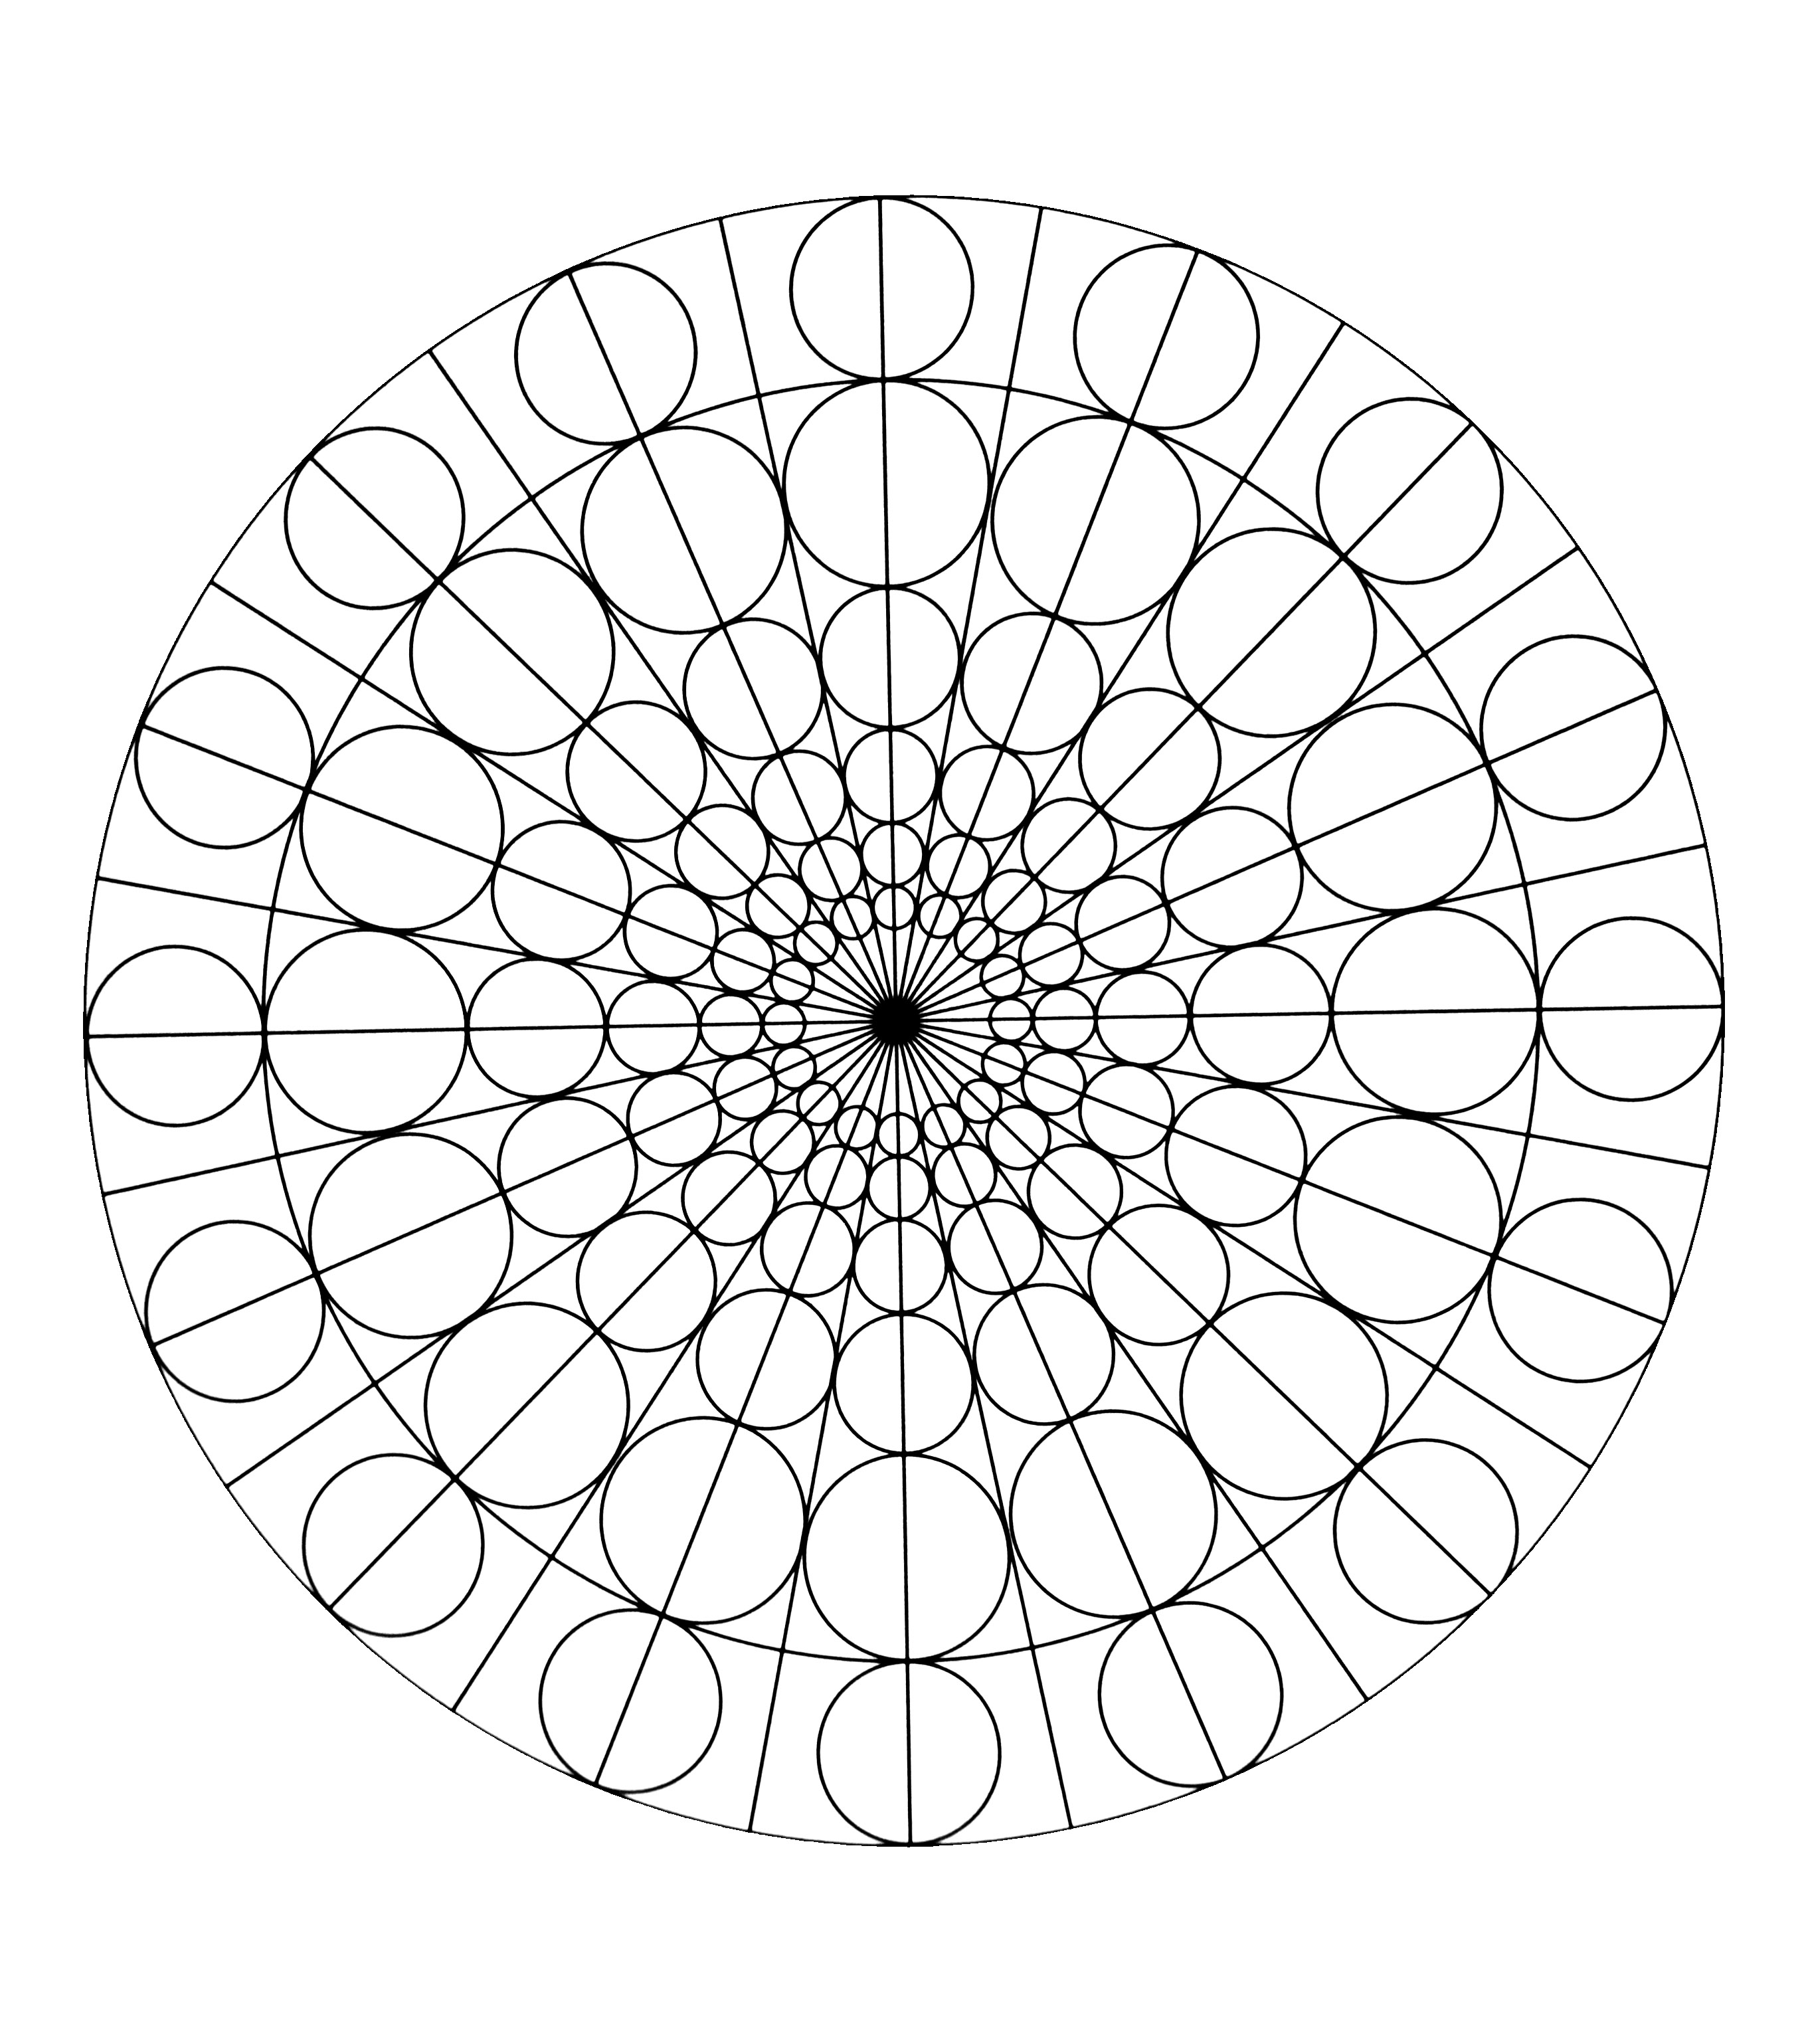 Funny Mandalas coloring page for kids